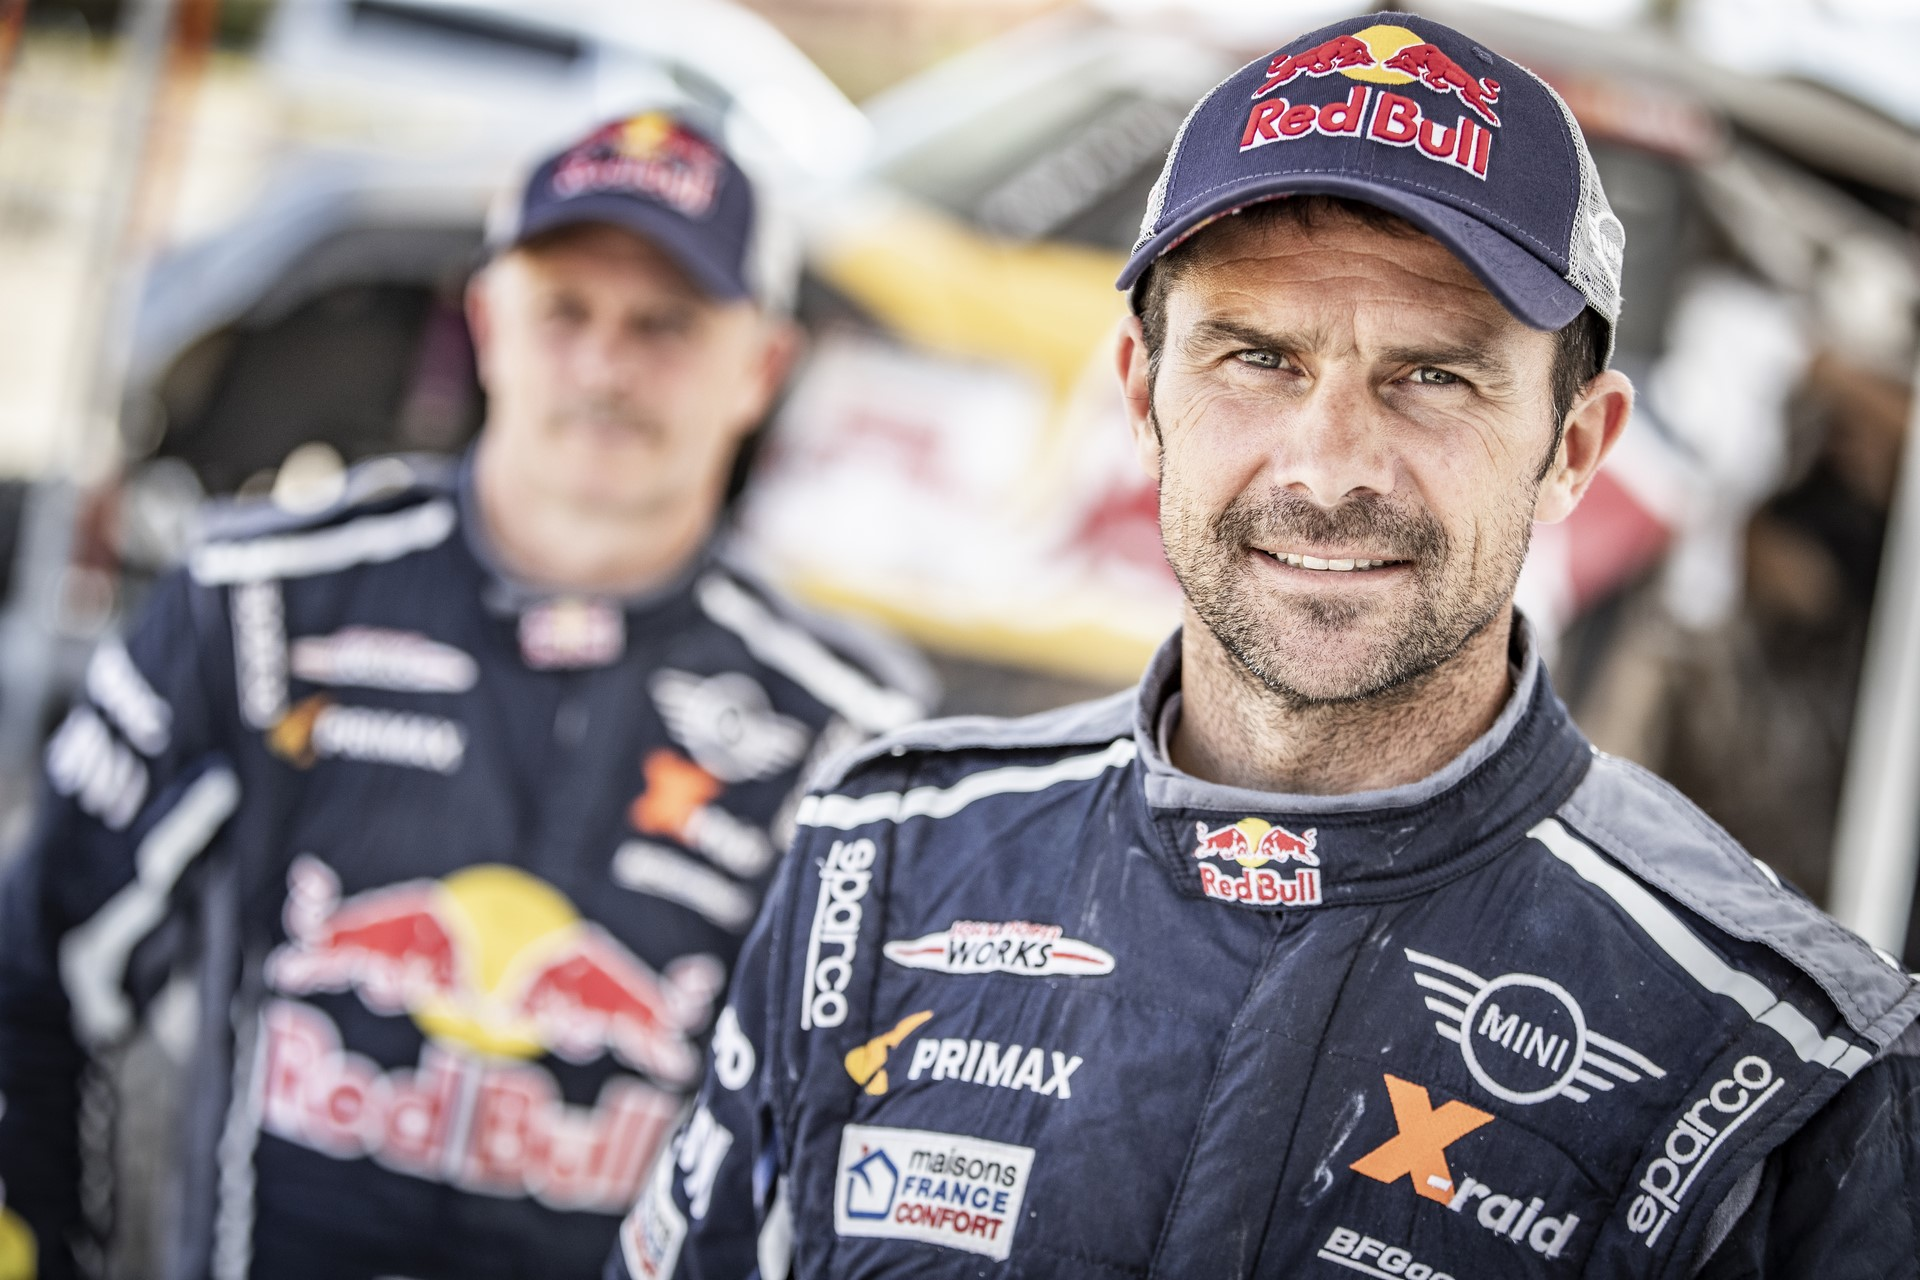 Cyril Despres & Jean-Paul Cottret poses for portrait, Rally Du Maroc in Erfoud, Morocco on October 08, 2018